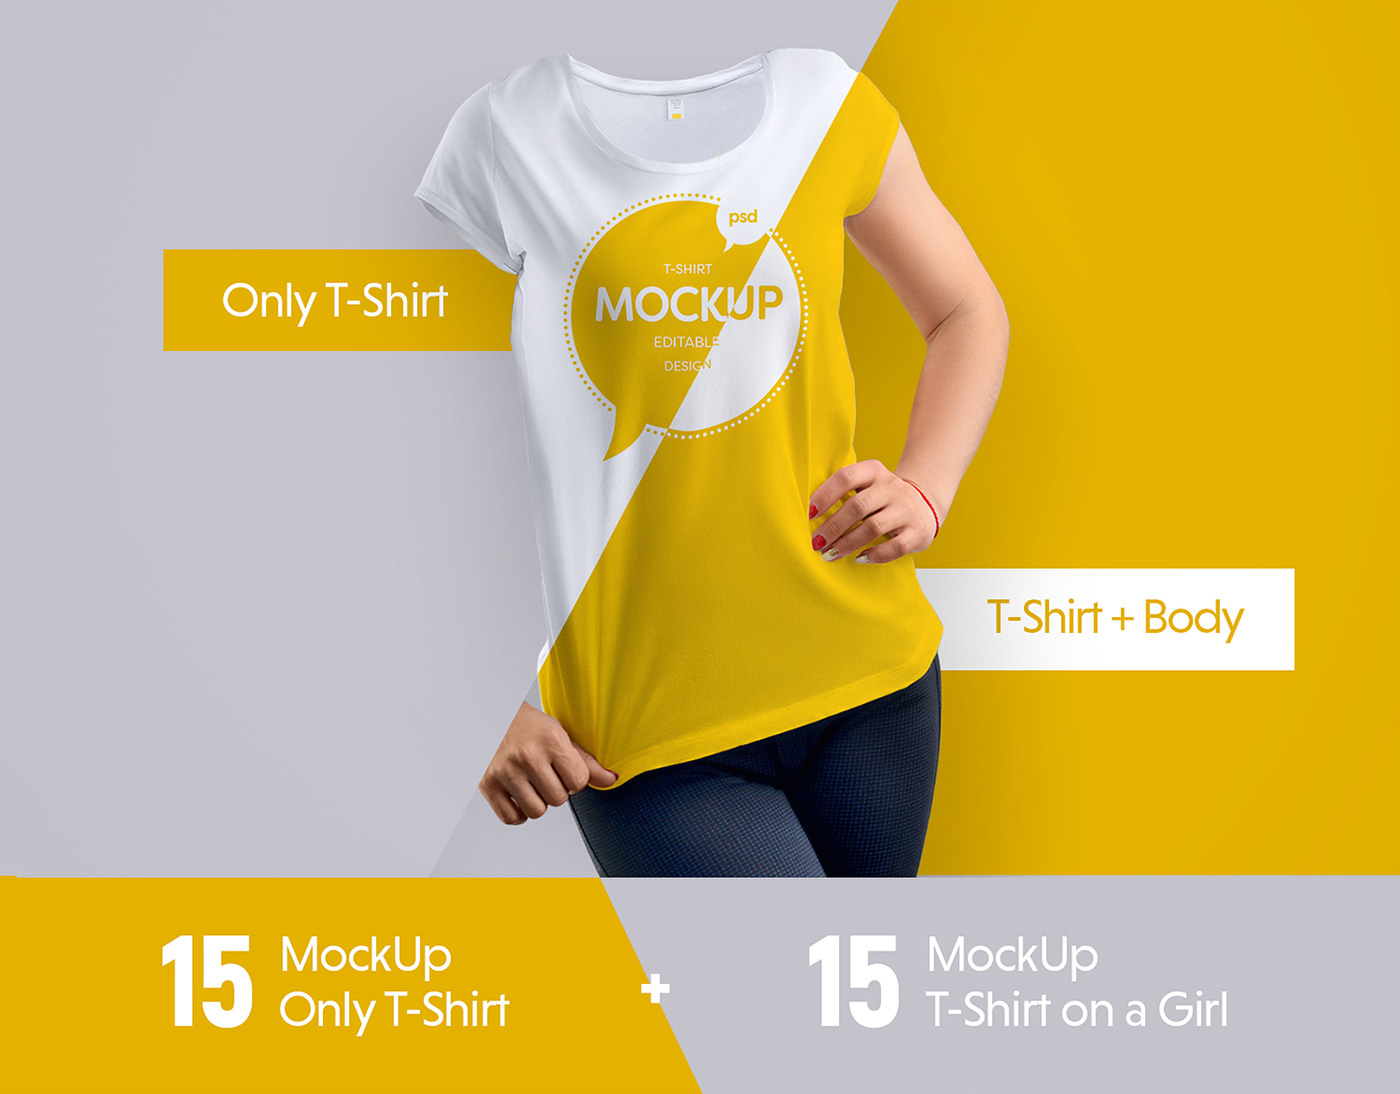 30 Mock Ups T Shirt 1 Free Mockup On Behance